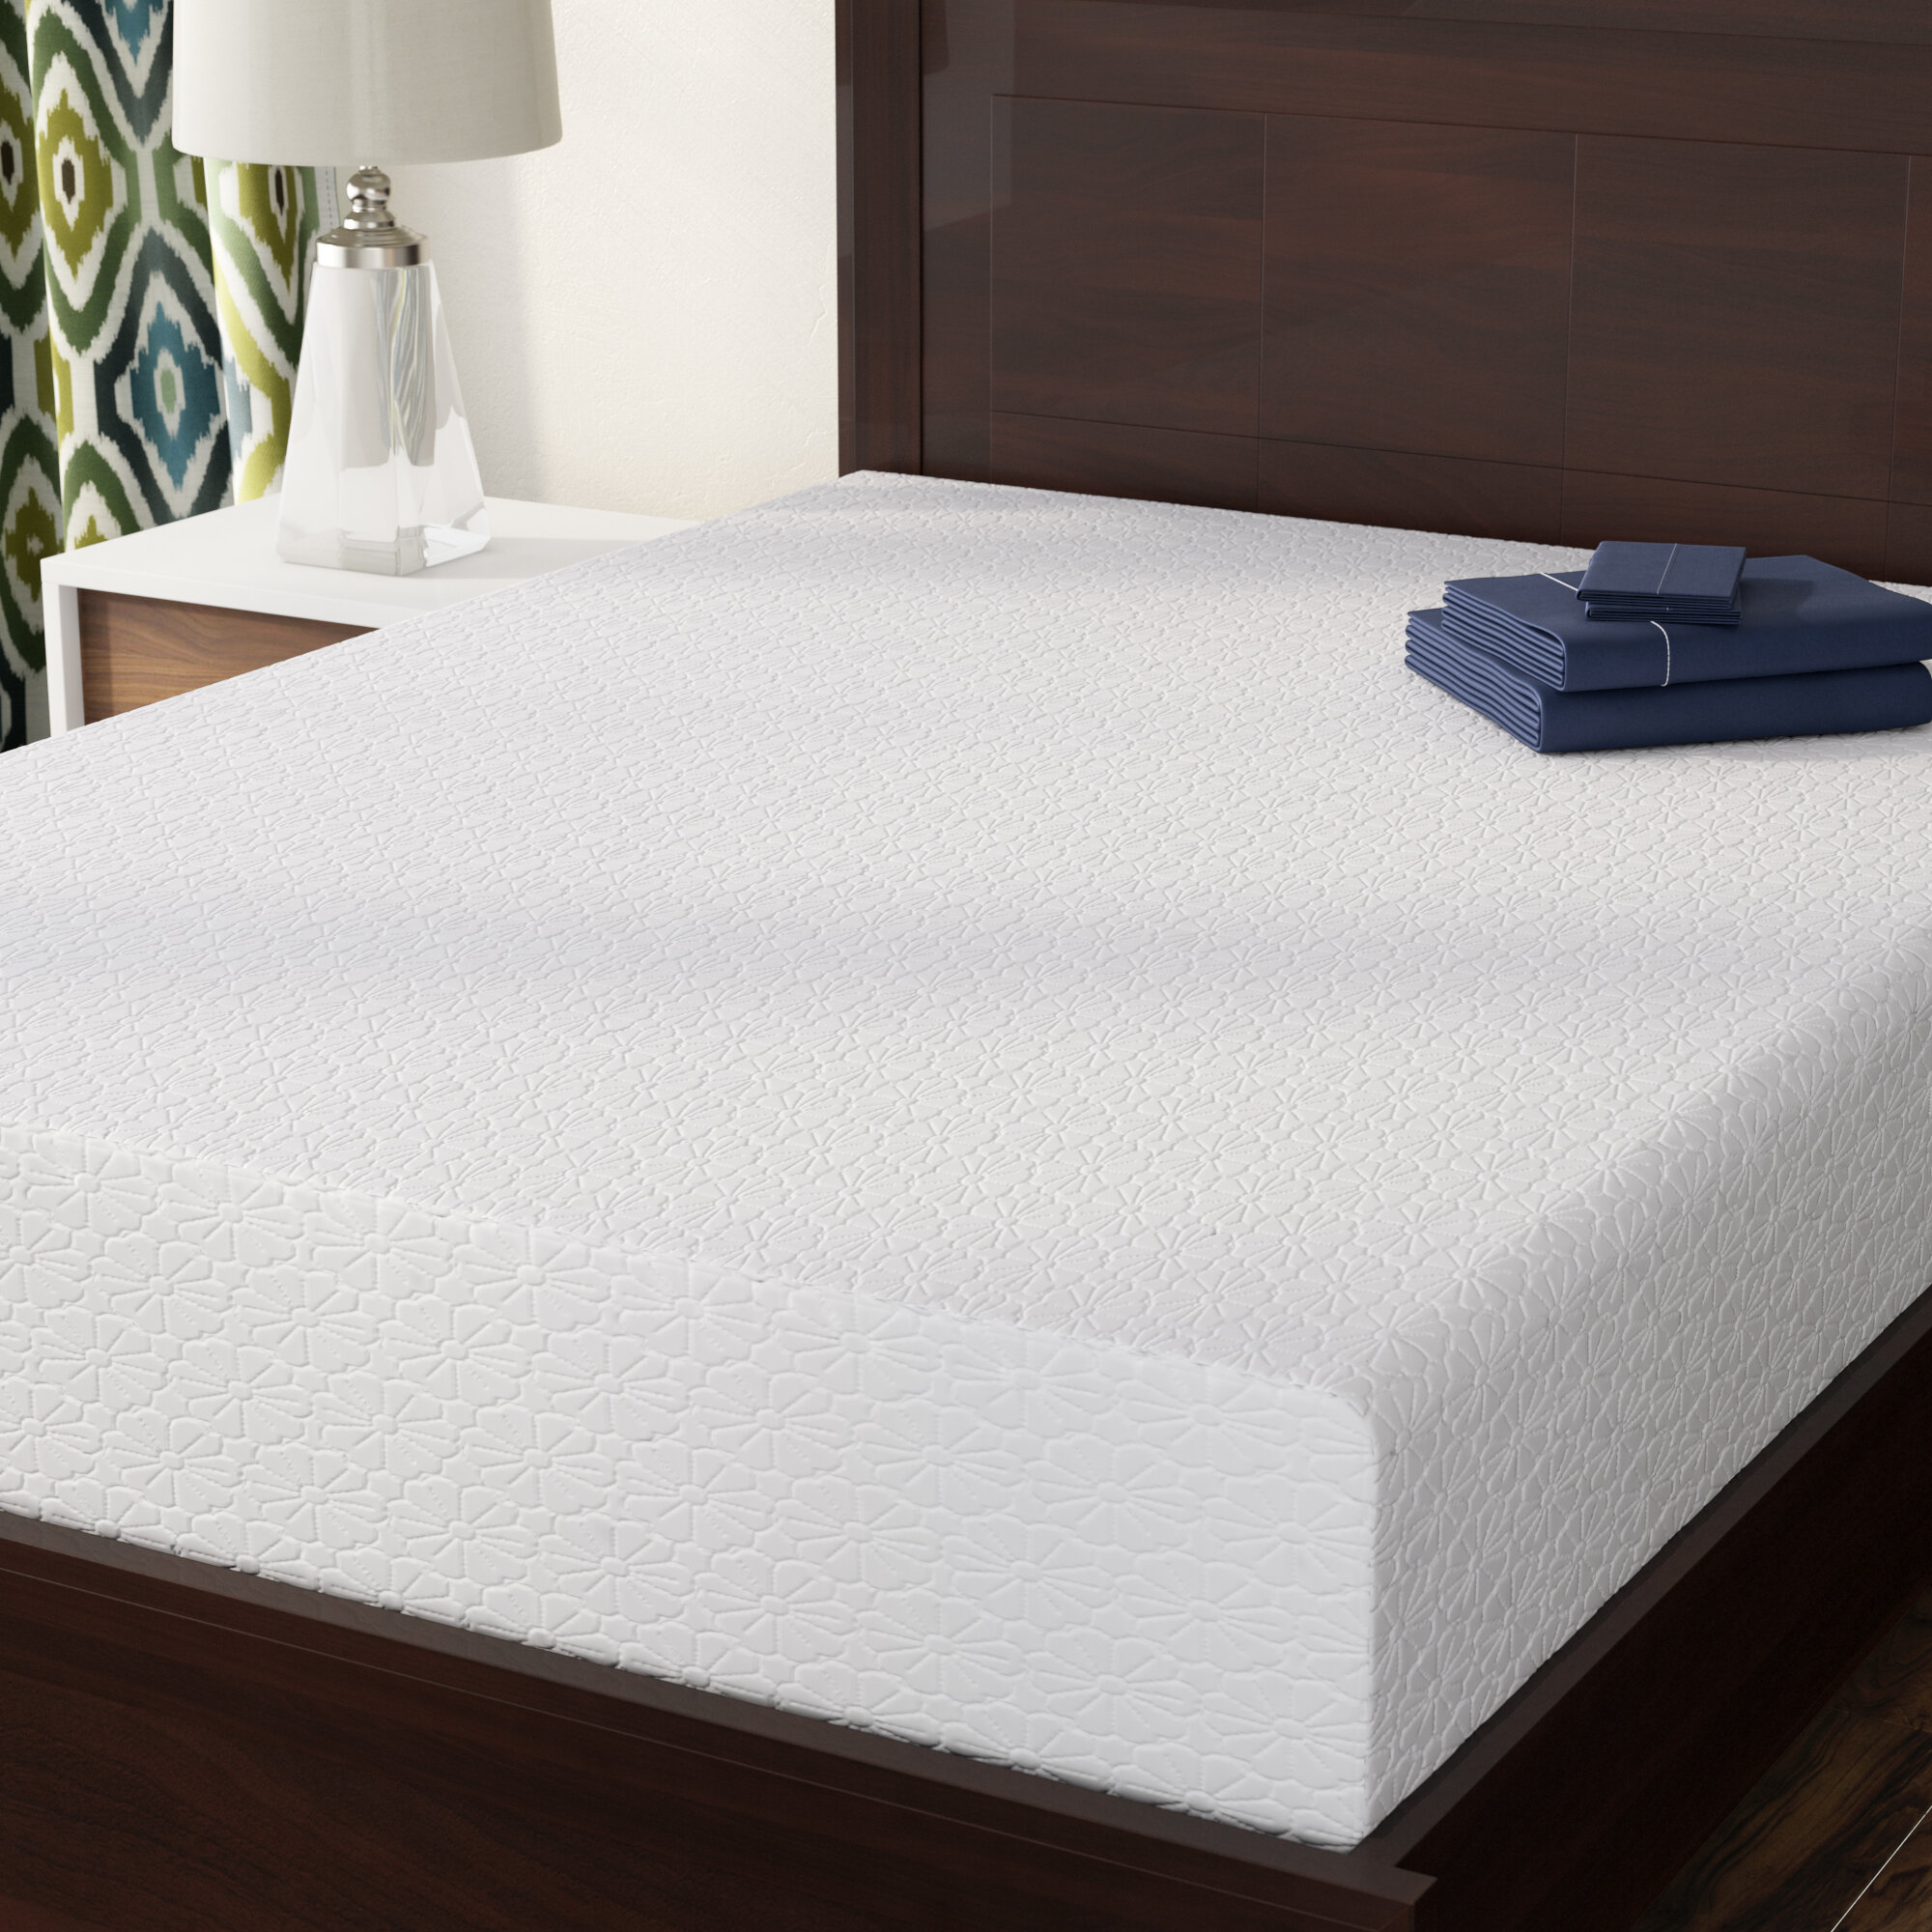 buy online top foam mattresses sprung best value and mattress memory hybrid pocket